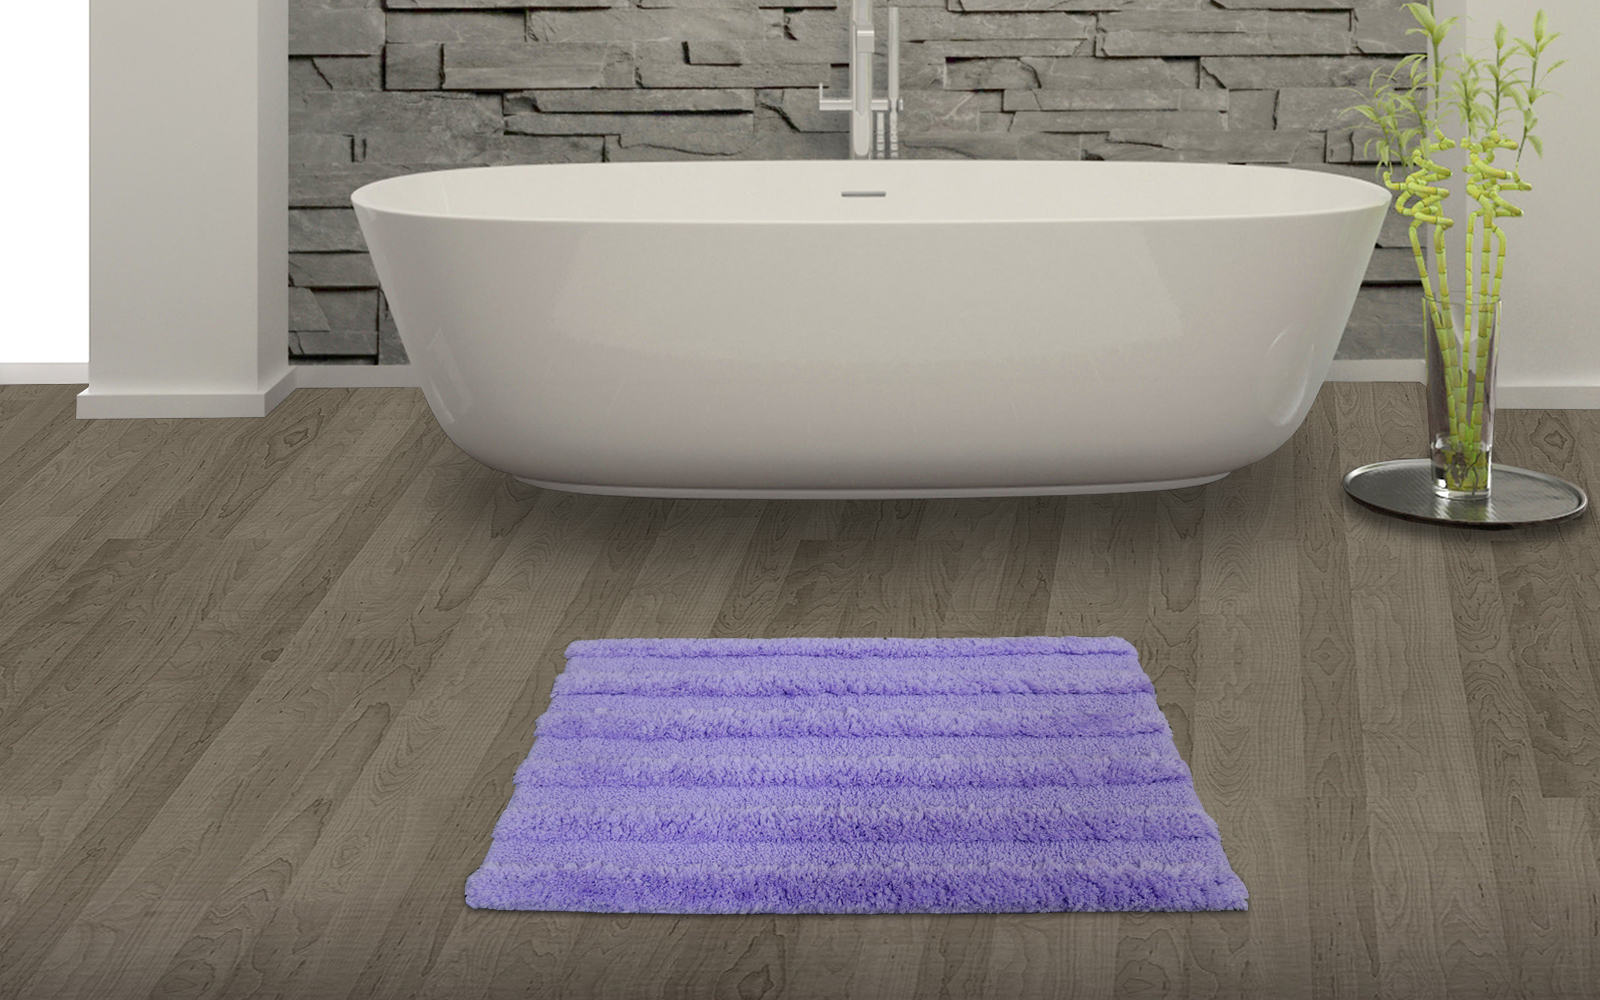 Spaces Swift Dry Lavender Cotton Bath Mat - Large Cotton Bath Mats in Lavender Colour by Spaces